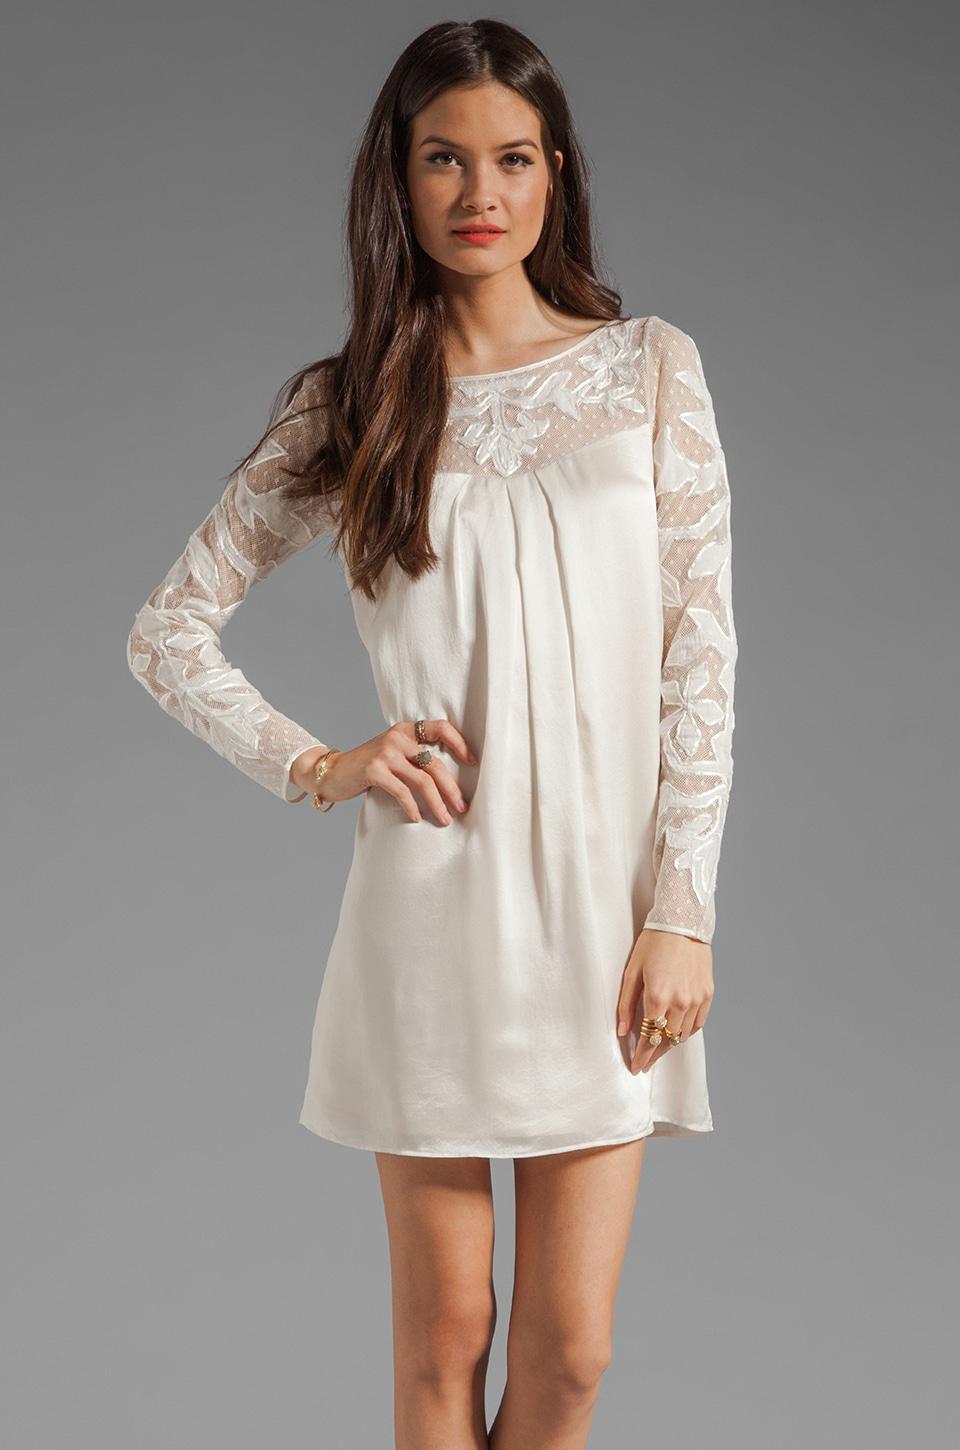 Alice by Temperley Floria Long Sleeve Tunic Dress in Champagne Mix